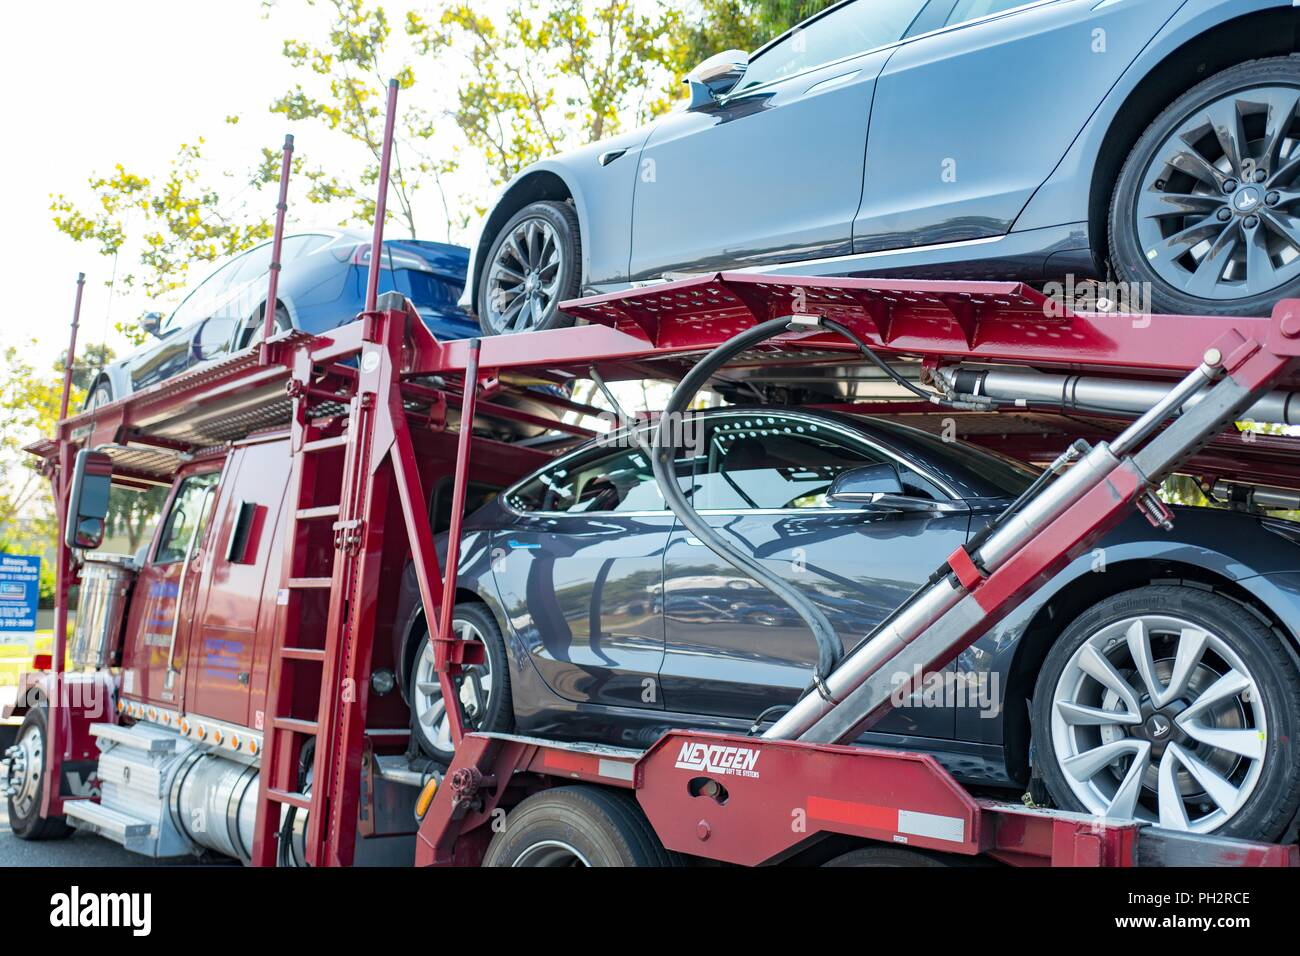 Brand new Tesla motors electric cars, including the Tesla Model 3 on a car carrier truck awaiting delivery near the company's headquarters and factory in the Silicon Valley, Fremont, California, July 28, 2018. () - Stock Image